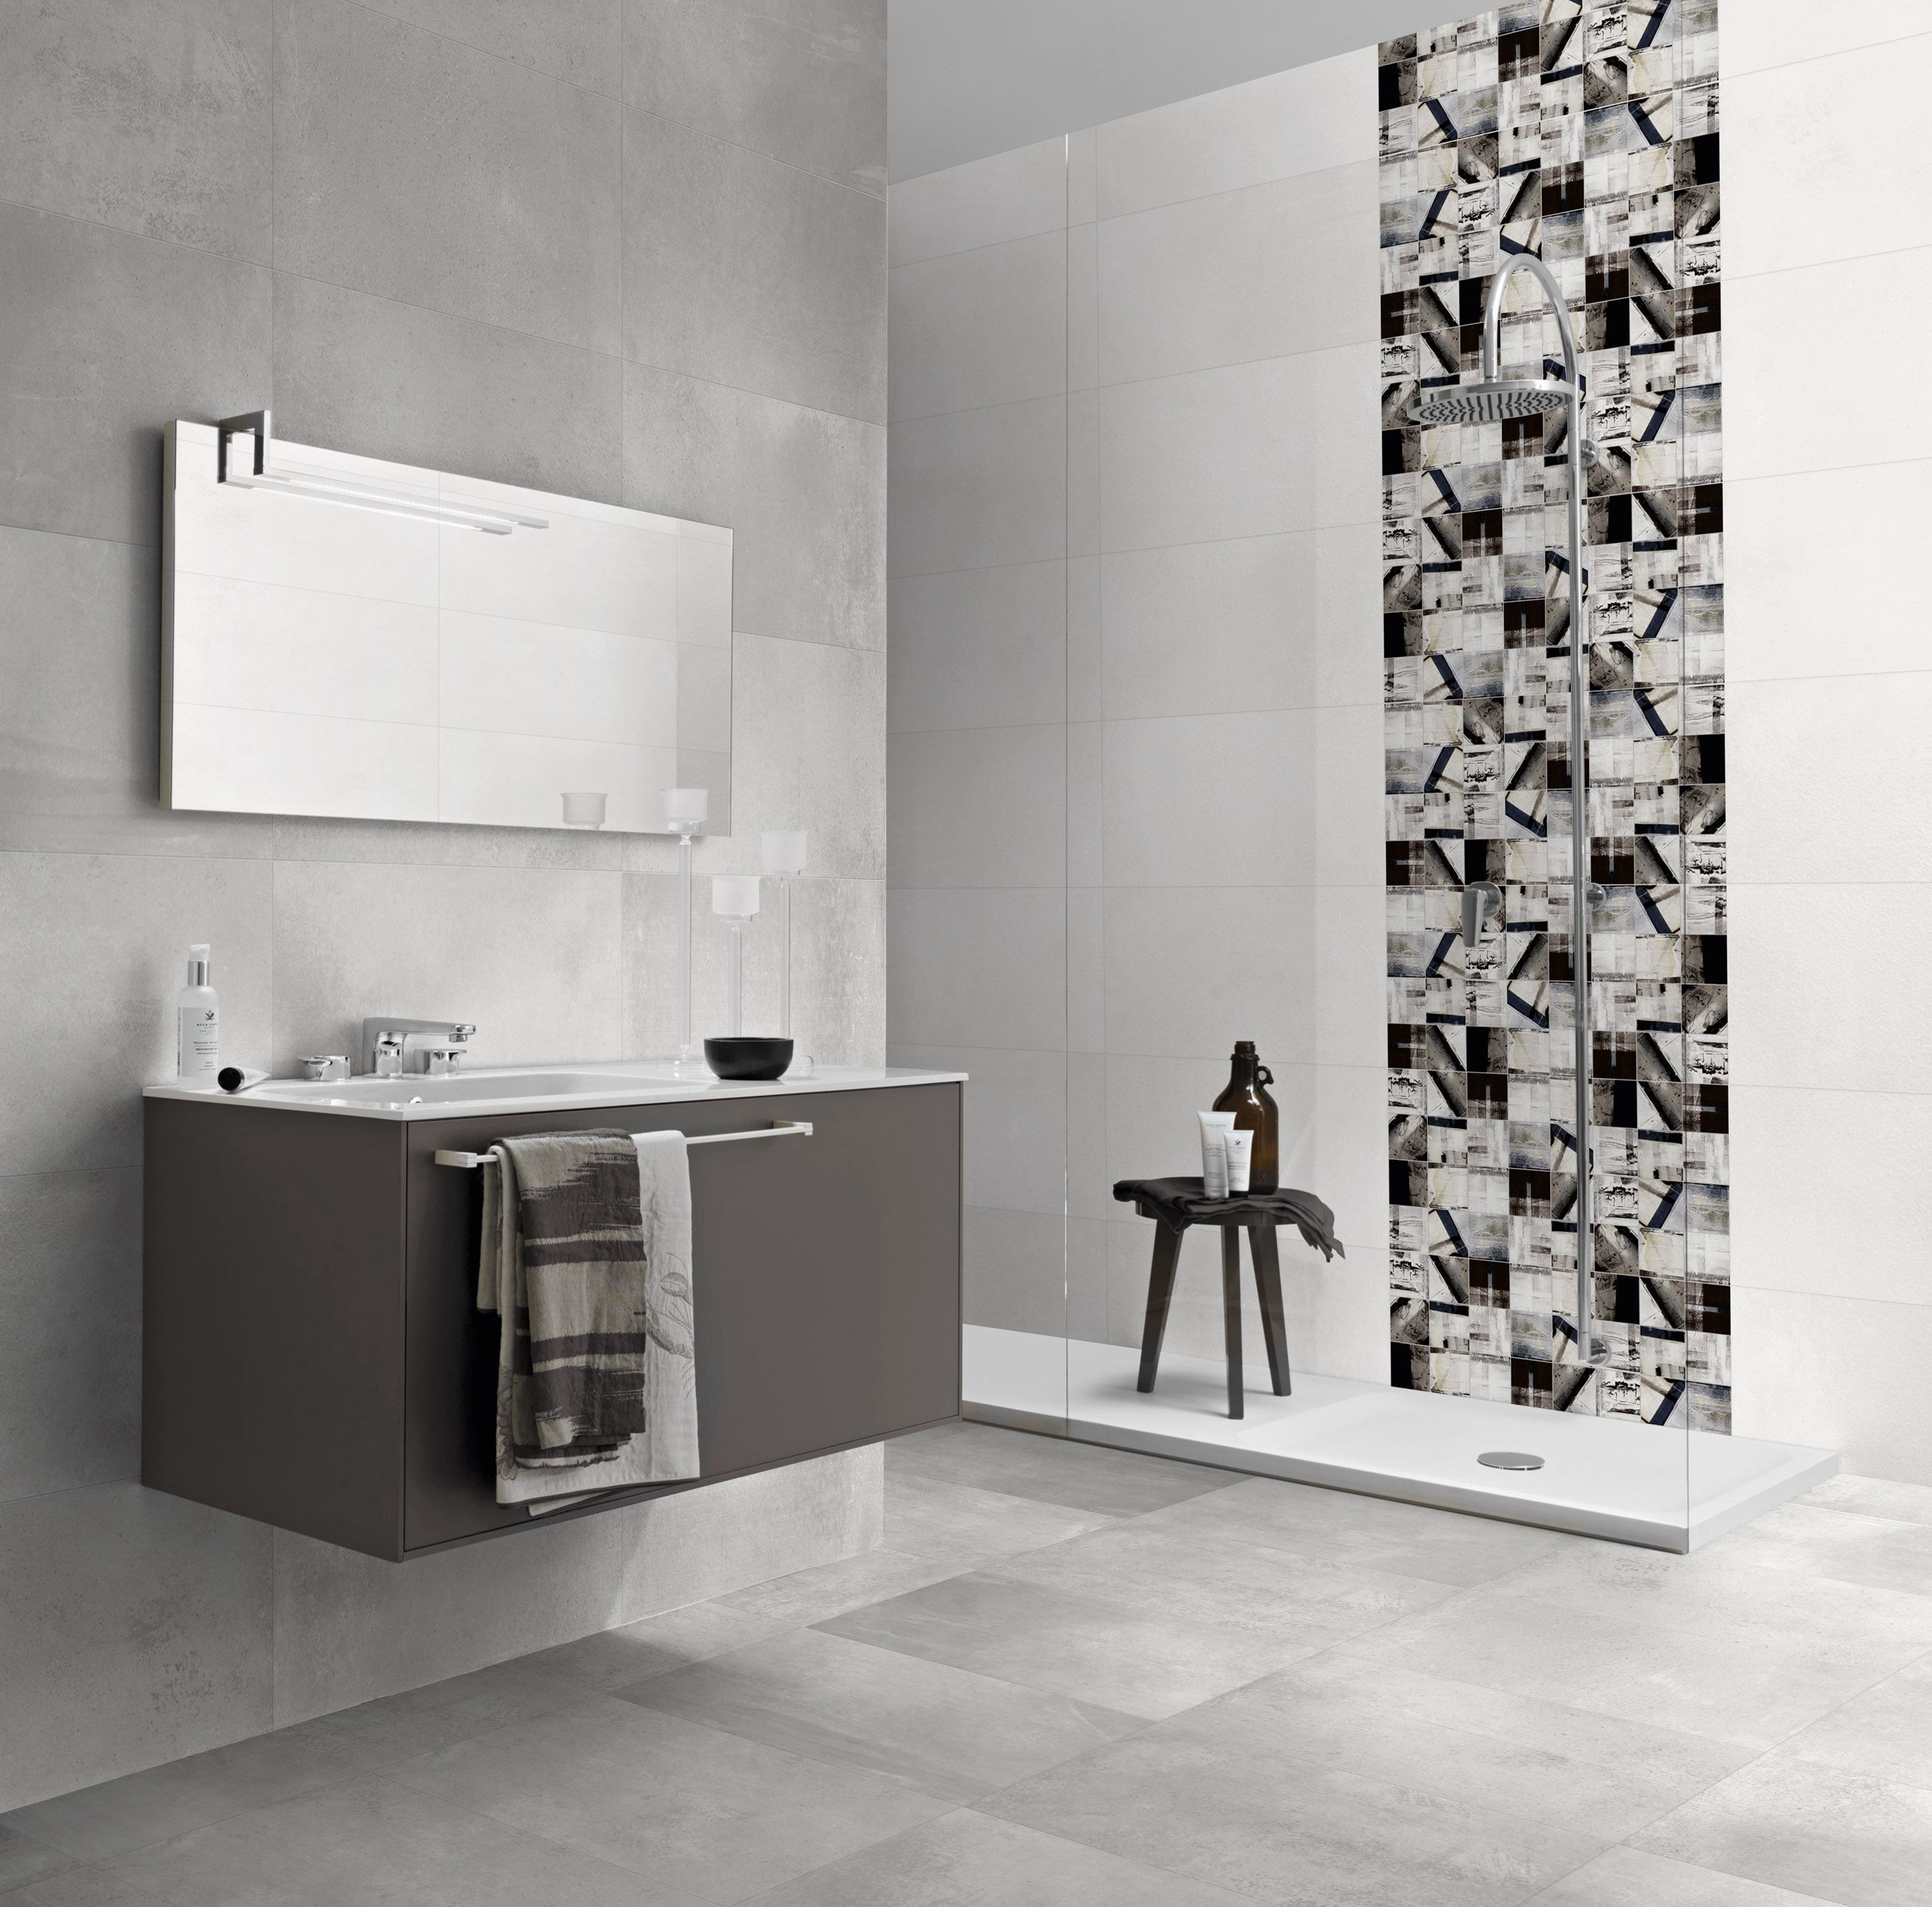 tile art lebanon porcelain spanish floors interior design bathroom inspiration interiors modern